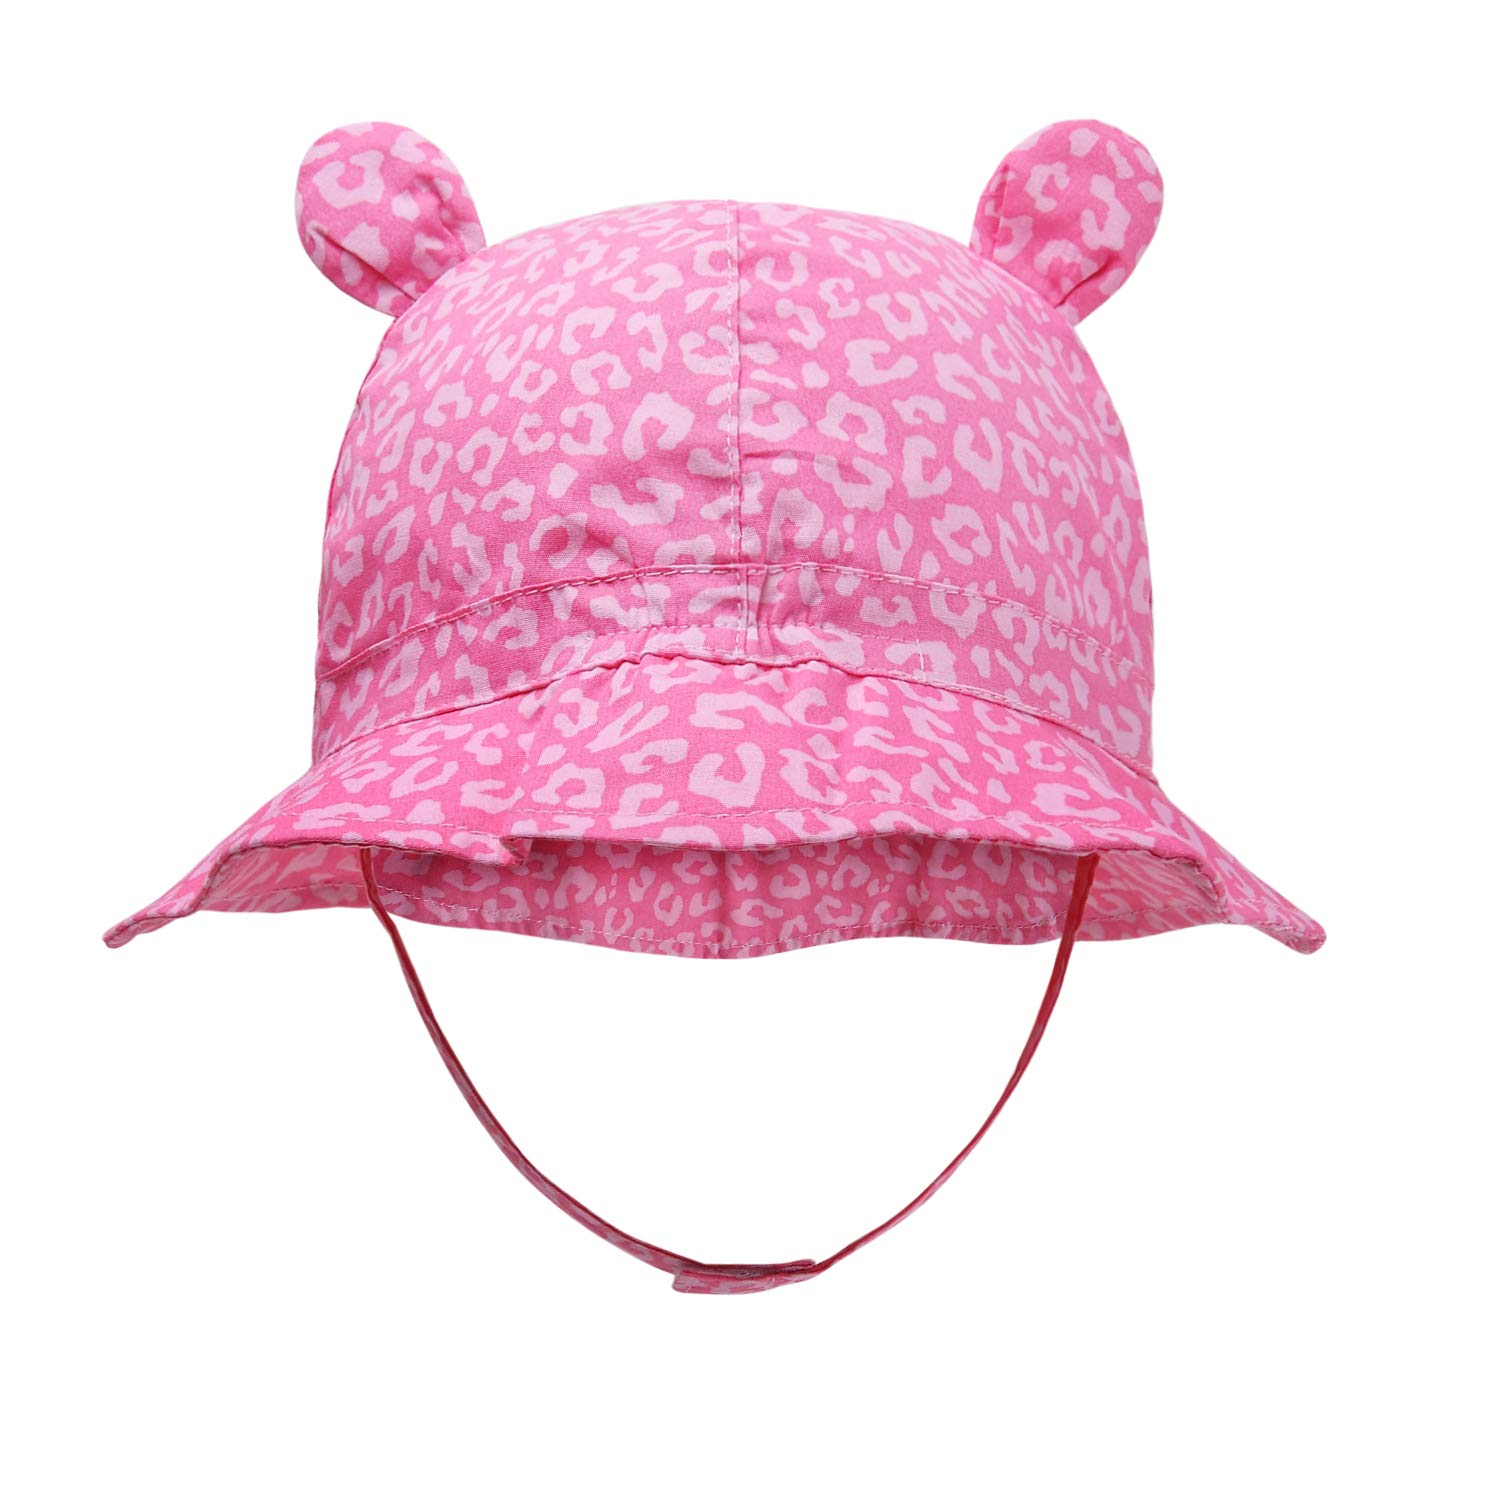 68b2355e Amazon.com: vivobiniya Newborn Girl Summer Hats Baby Sun Hats Toddler hat  0-12M: Clothing